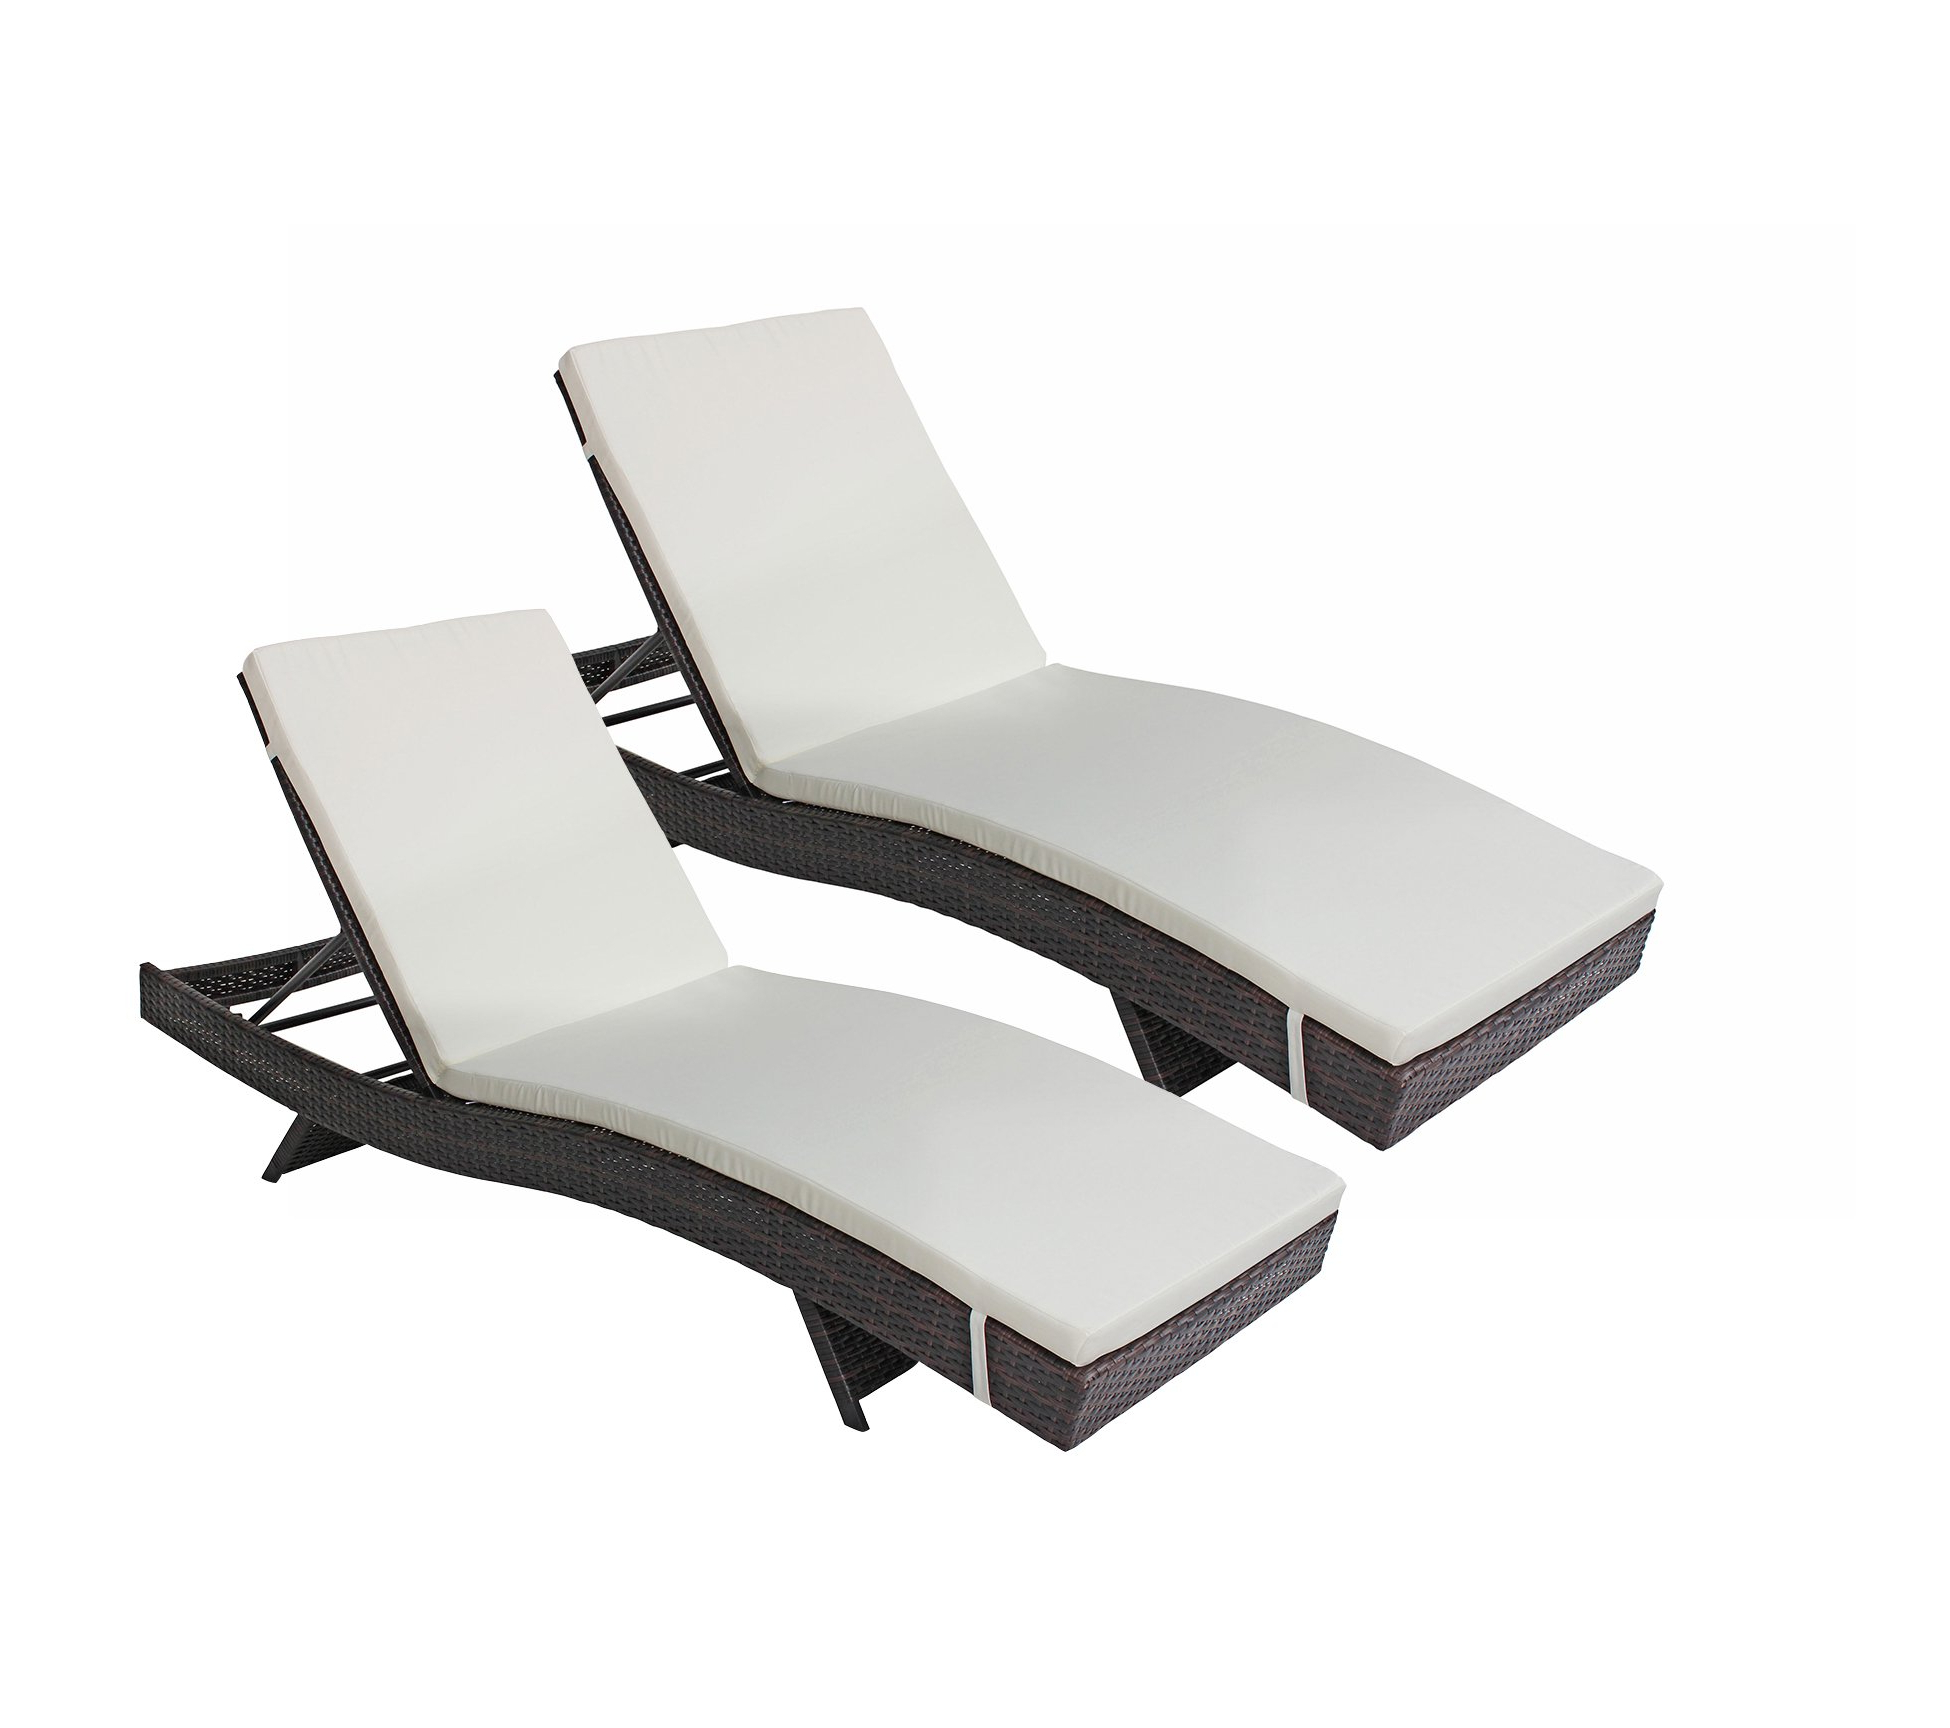 Cheap Modern Outdoor Chaise Lounge Chairs, Find Modern Throughout Well Known All Weather Single Outdoor Adjustable Loungers (View 15 of 25)